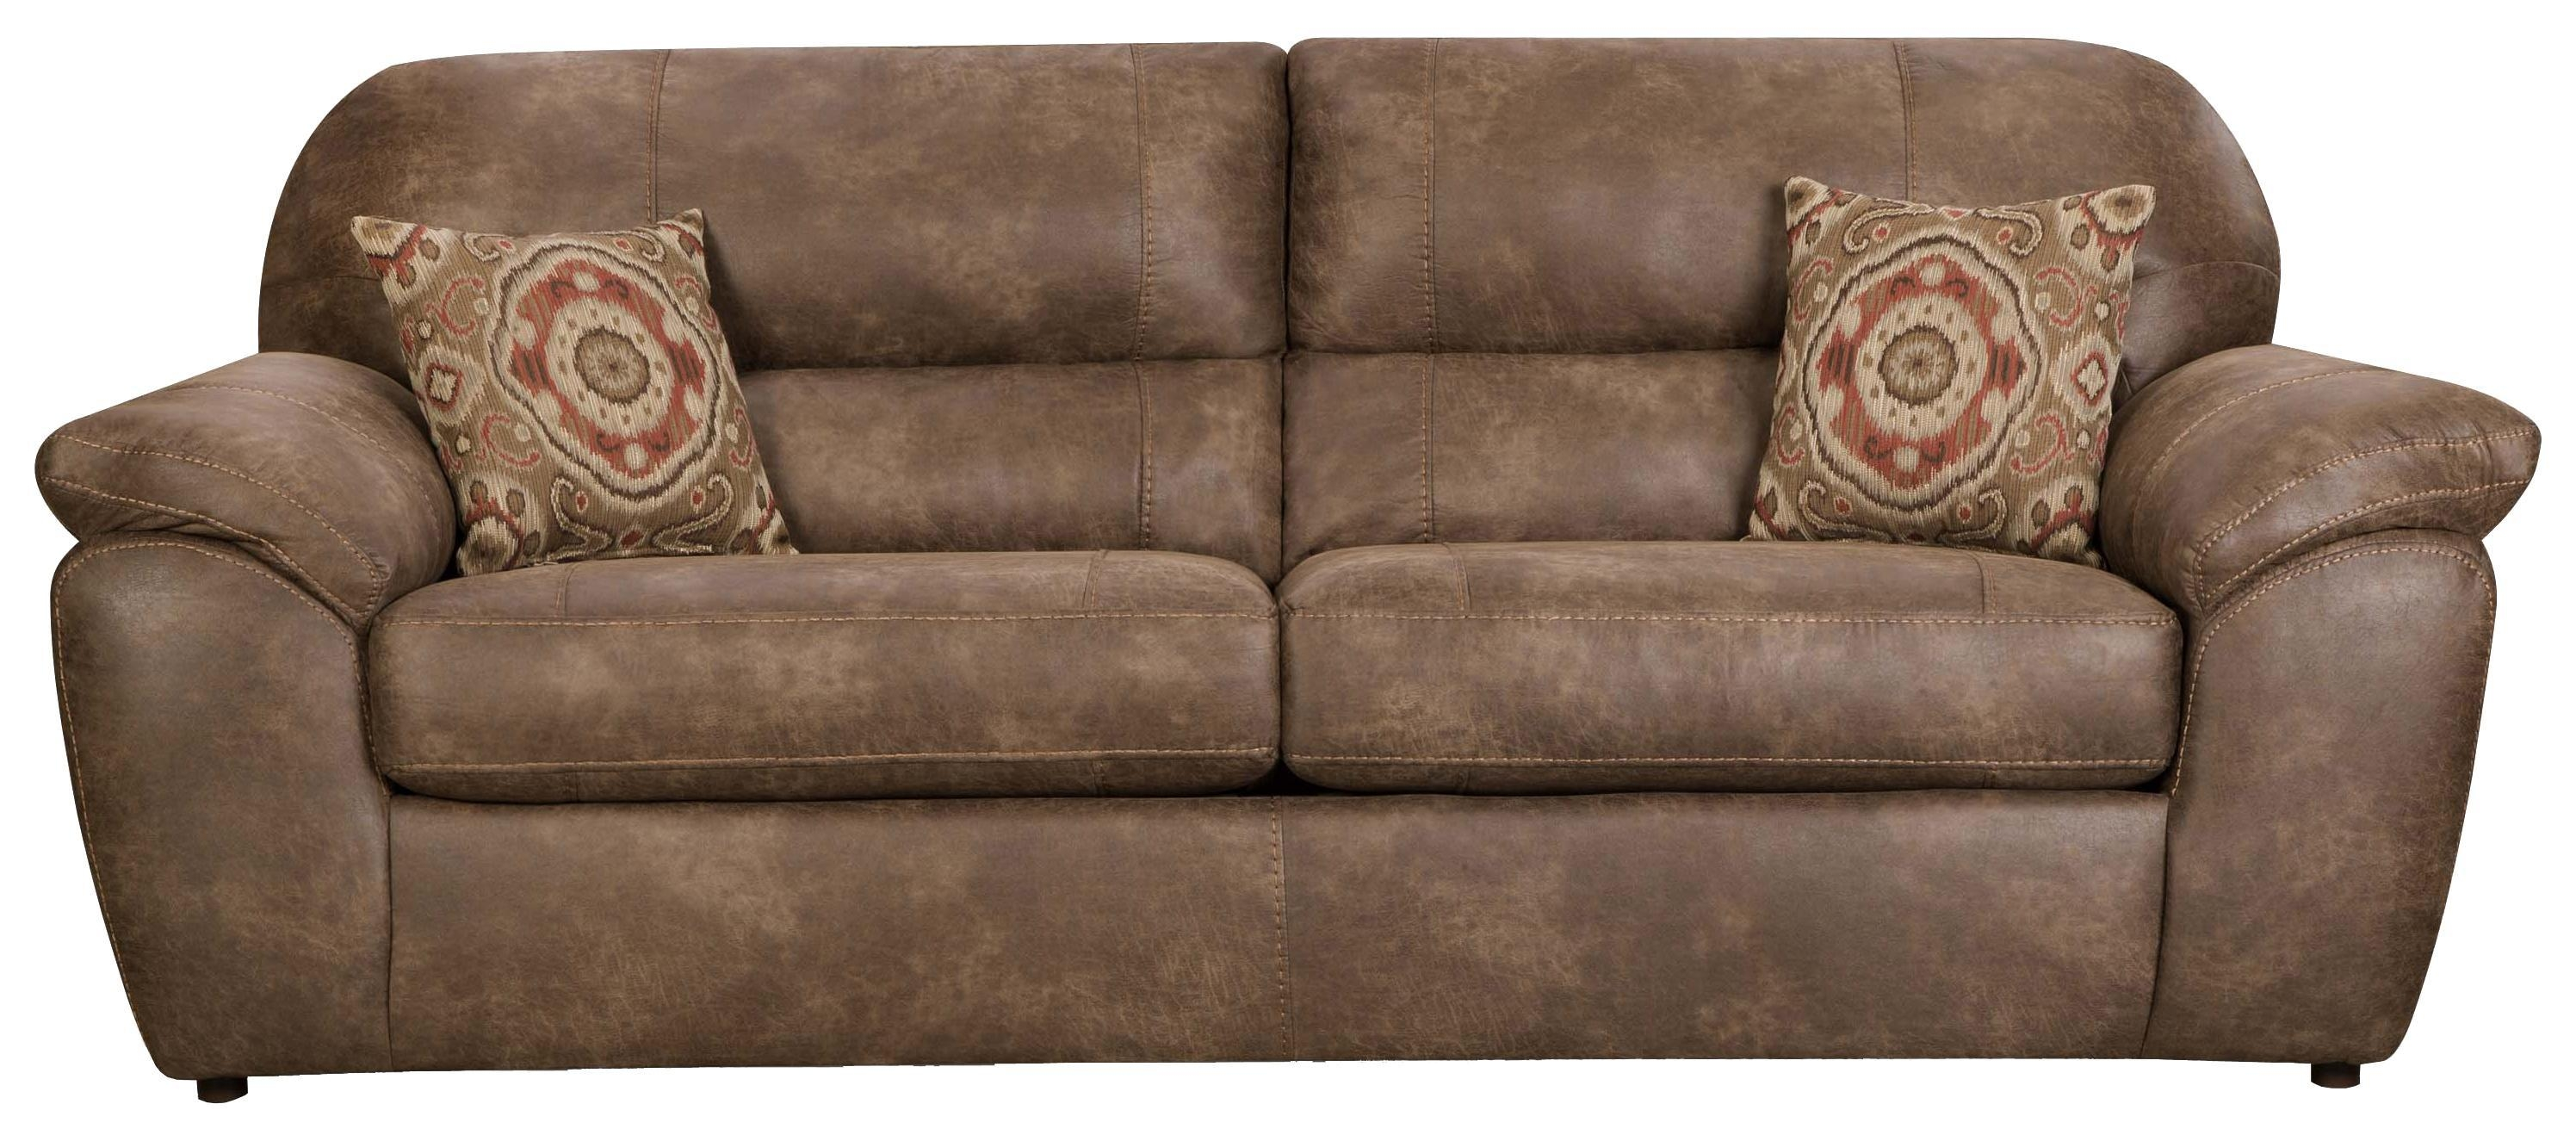 Casual Faux Leather Plush Sofacorinthian | Wolf And Gardiner Inside Corinthian Sofas (View 3 of 20)